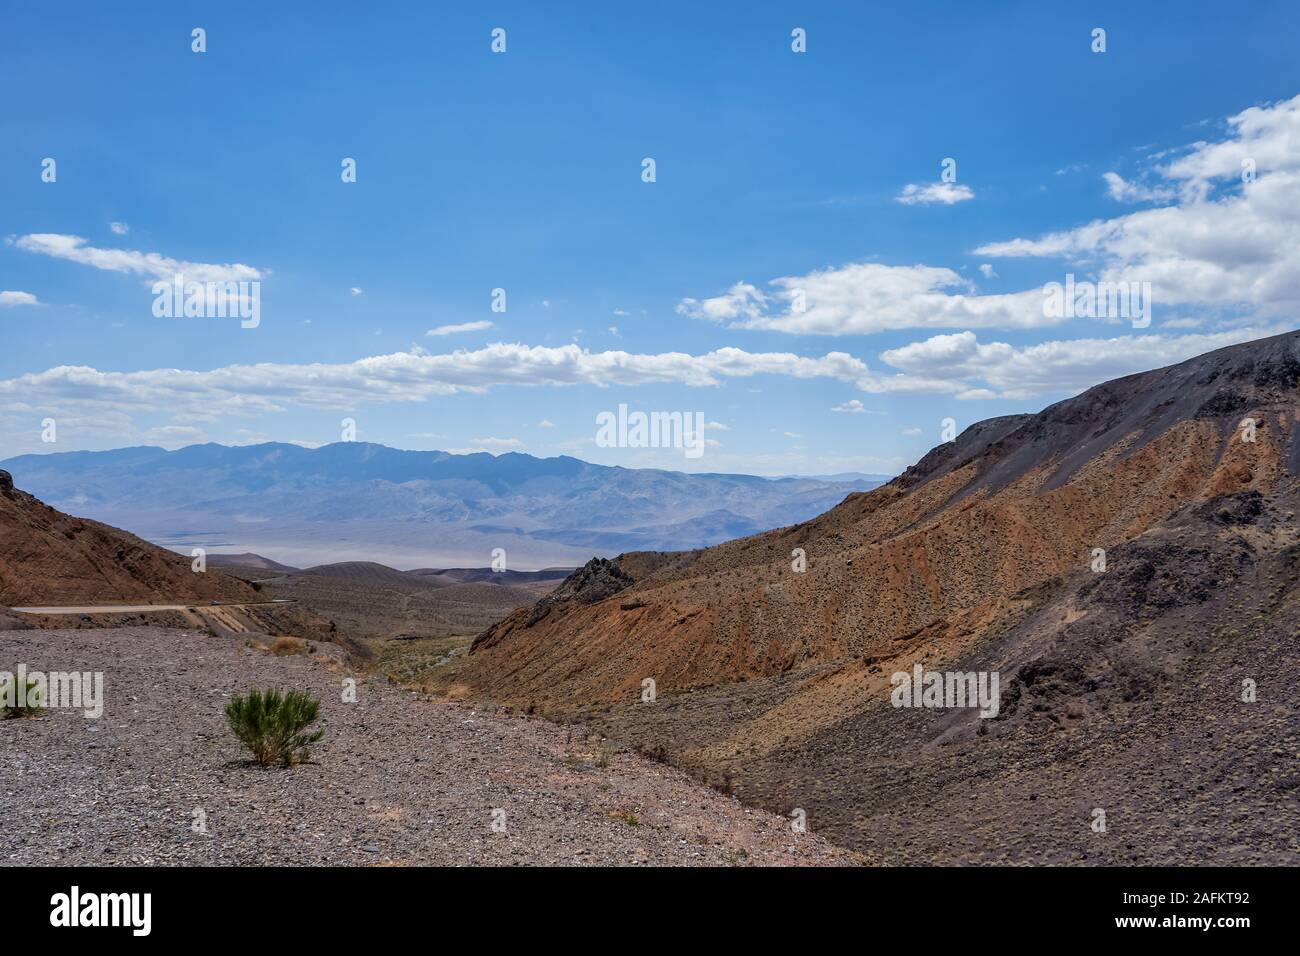 The trail at Towne Pass that is located between Stovepipe Wells and Panamint Valley, United States Stock Photo